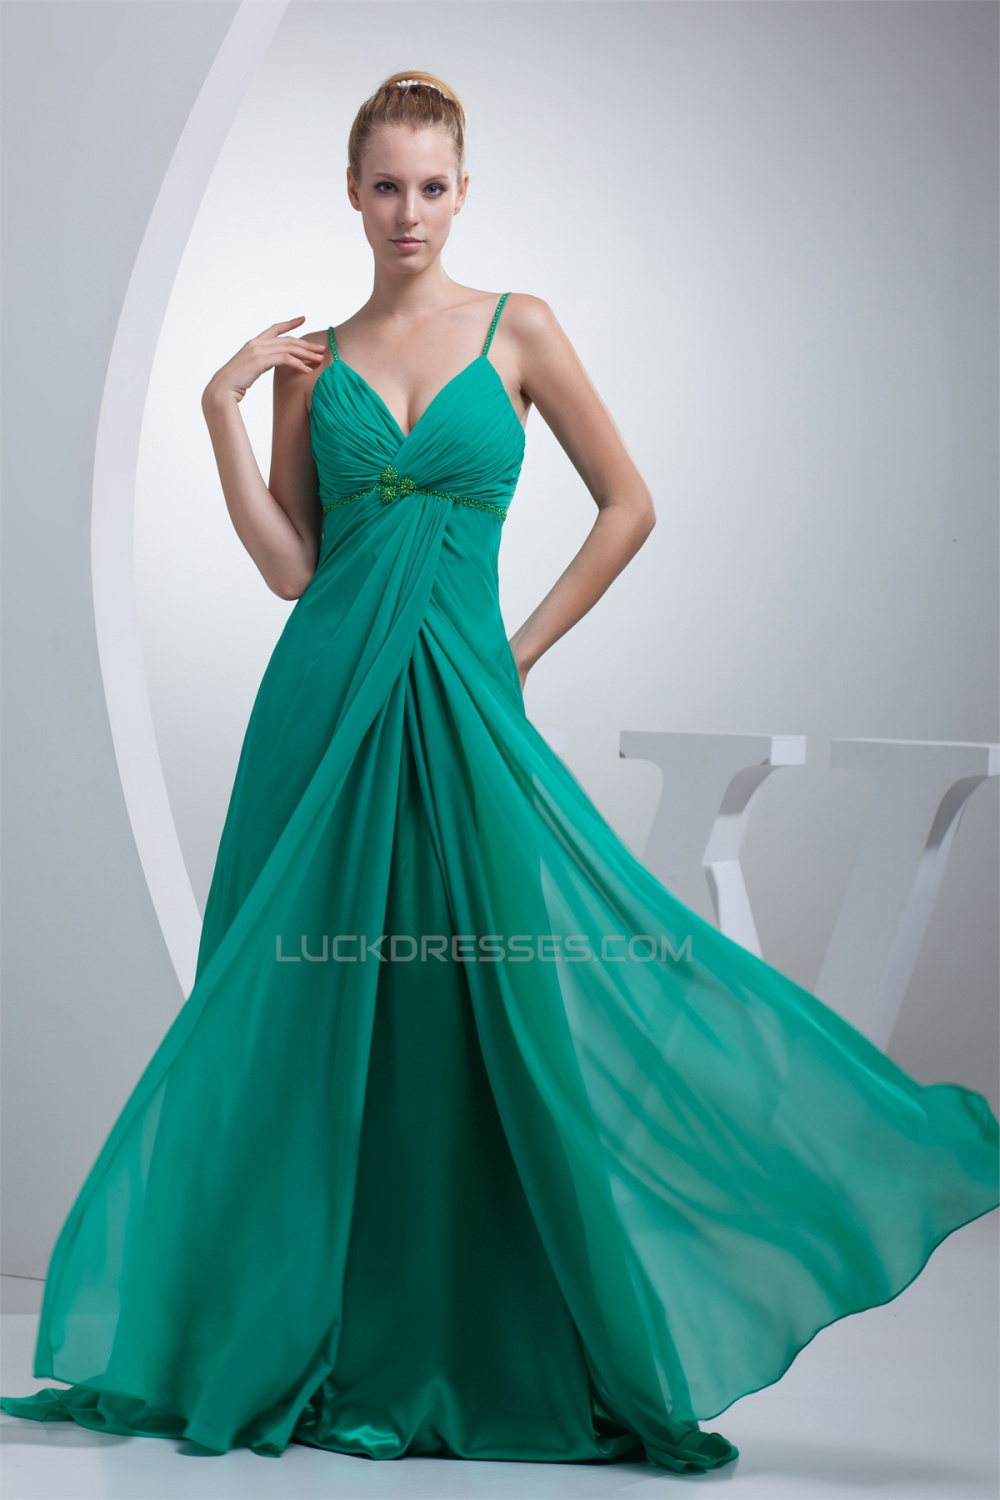 Line chiffon spaghetti strap long green promformal evening a line chiffon spaghetti strap long green promformal evening maternity dresses 02020014 ombrellifo Image collections